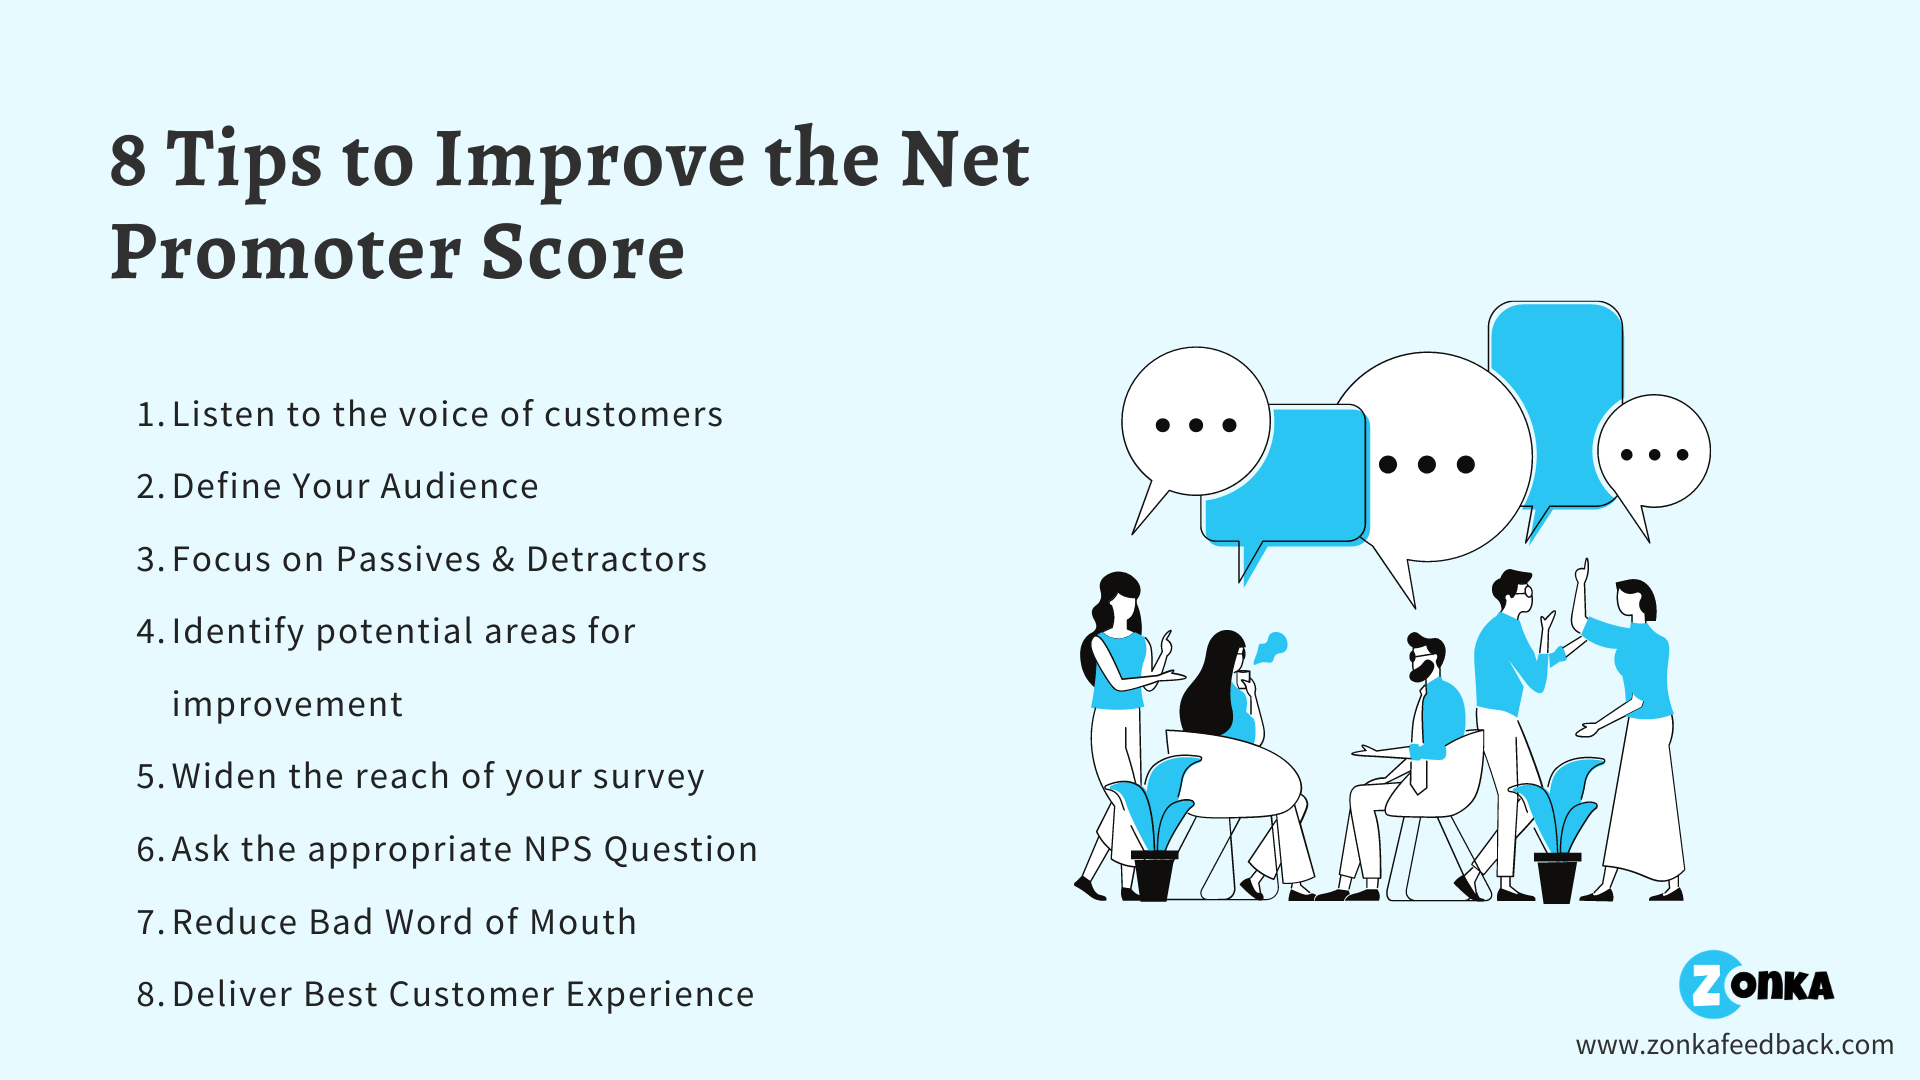 8 Tips to Improve the Net Promoter Score